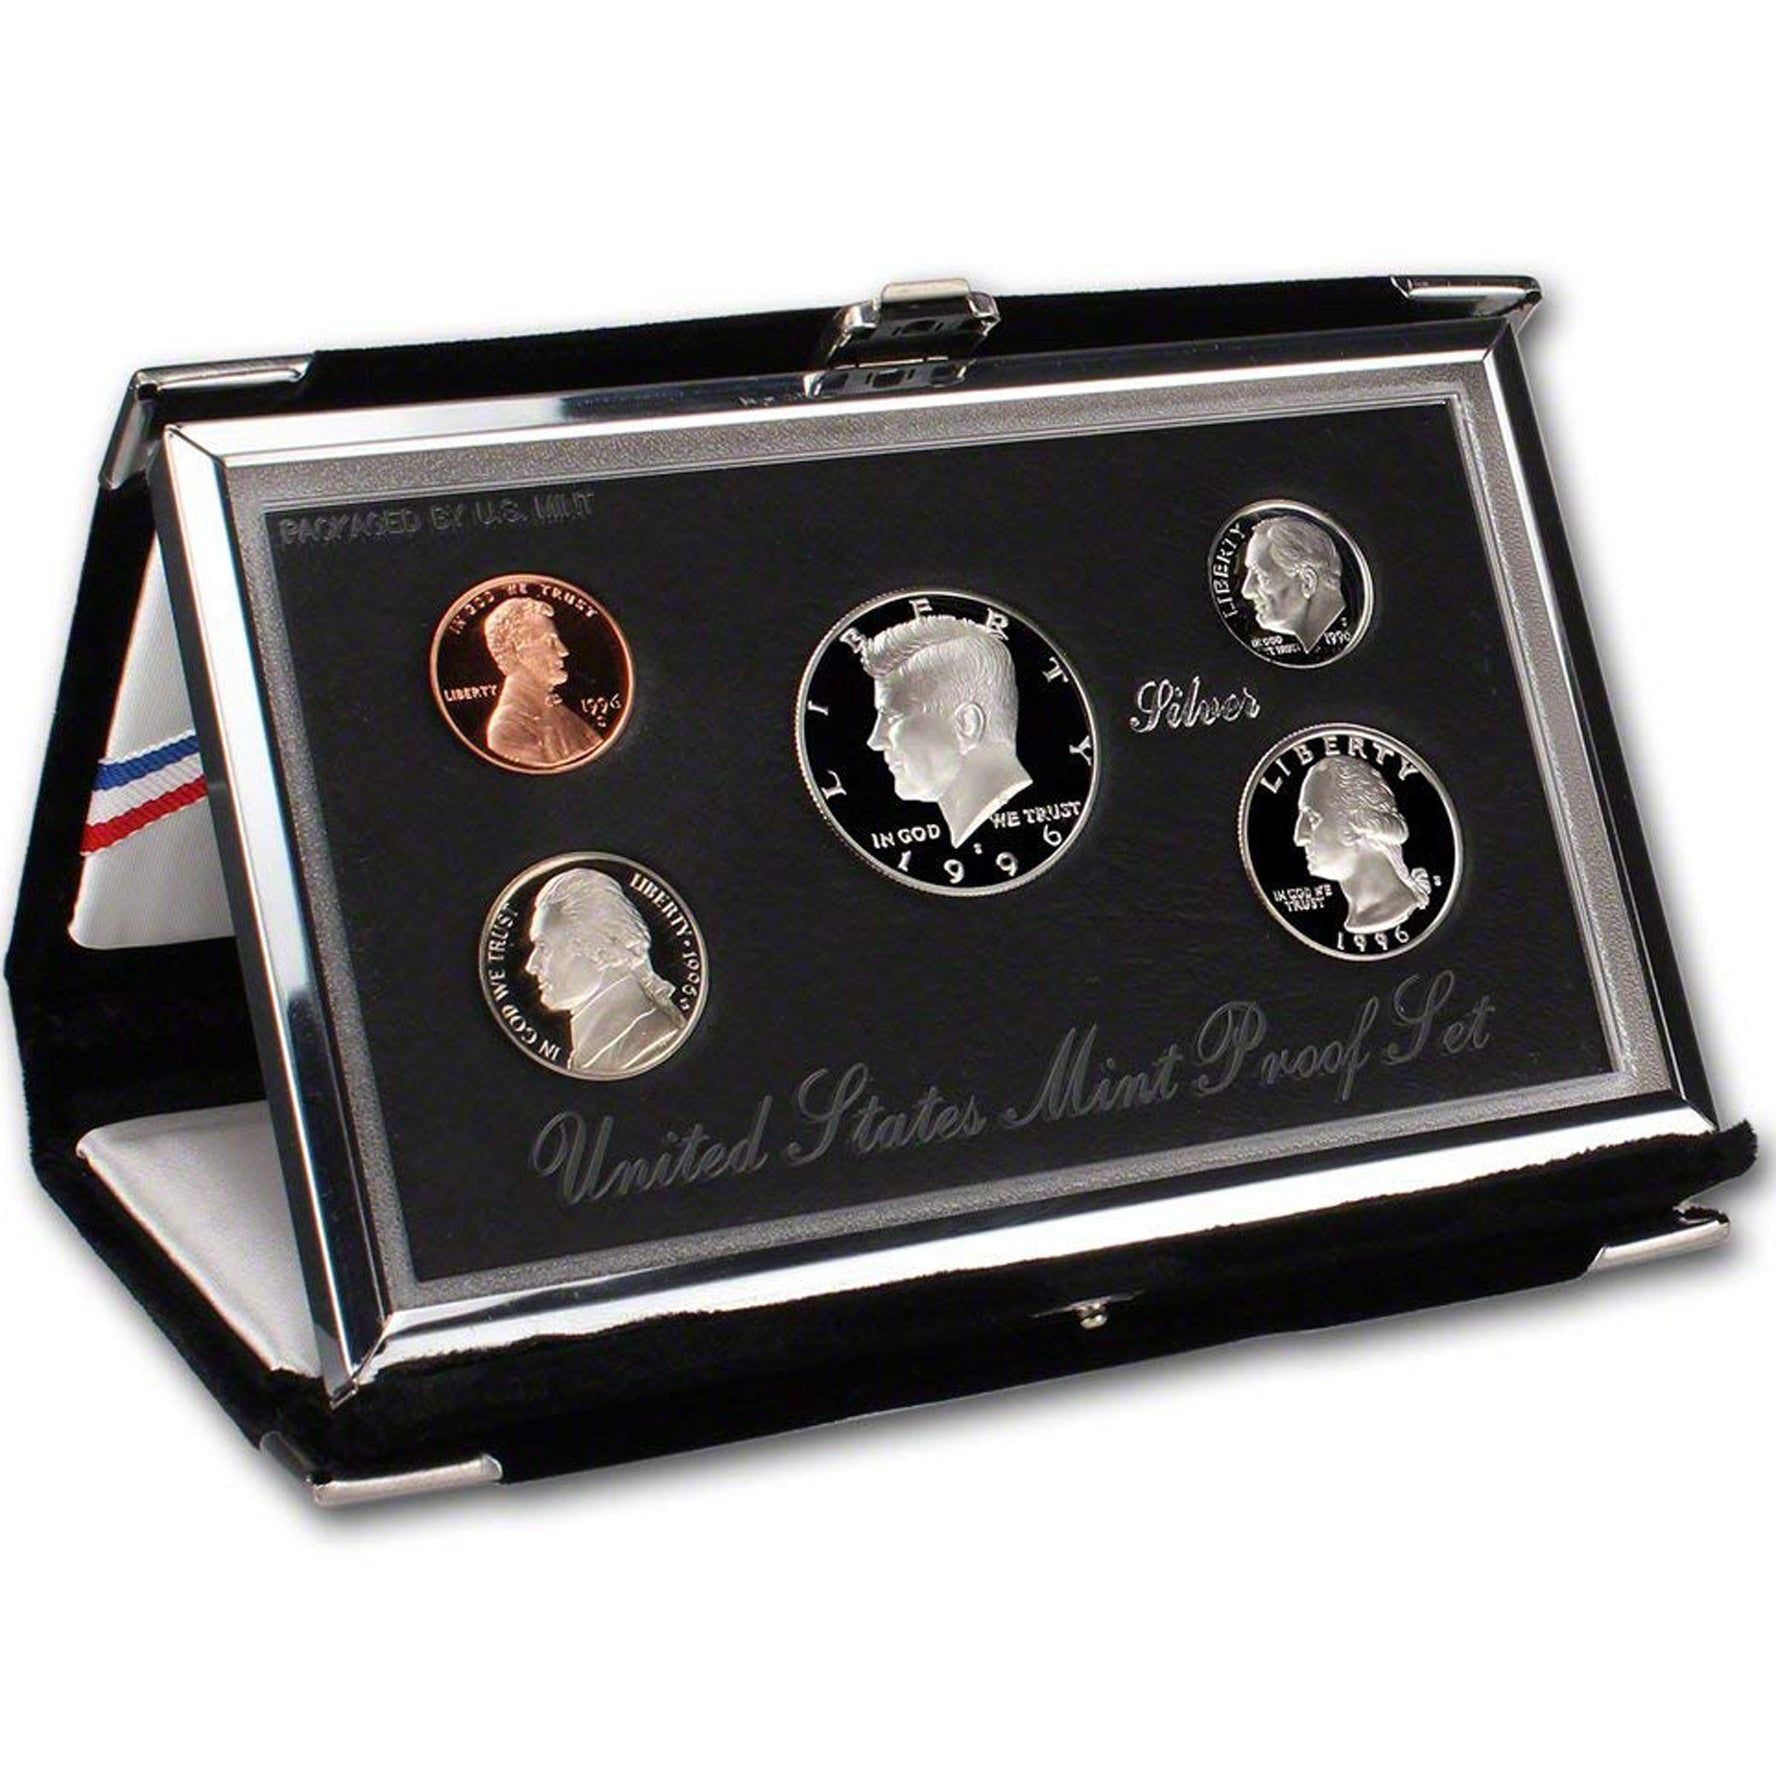 1996 Premier Silver Proof Set (OGP) 5 coins